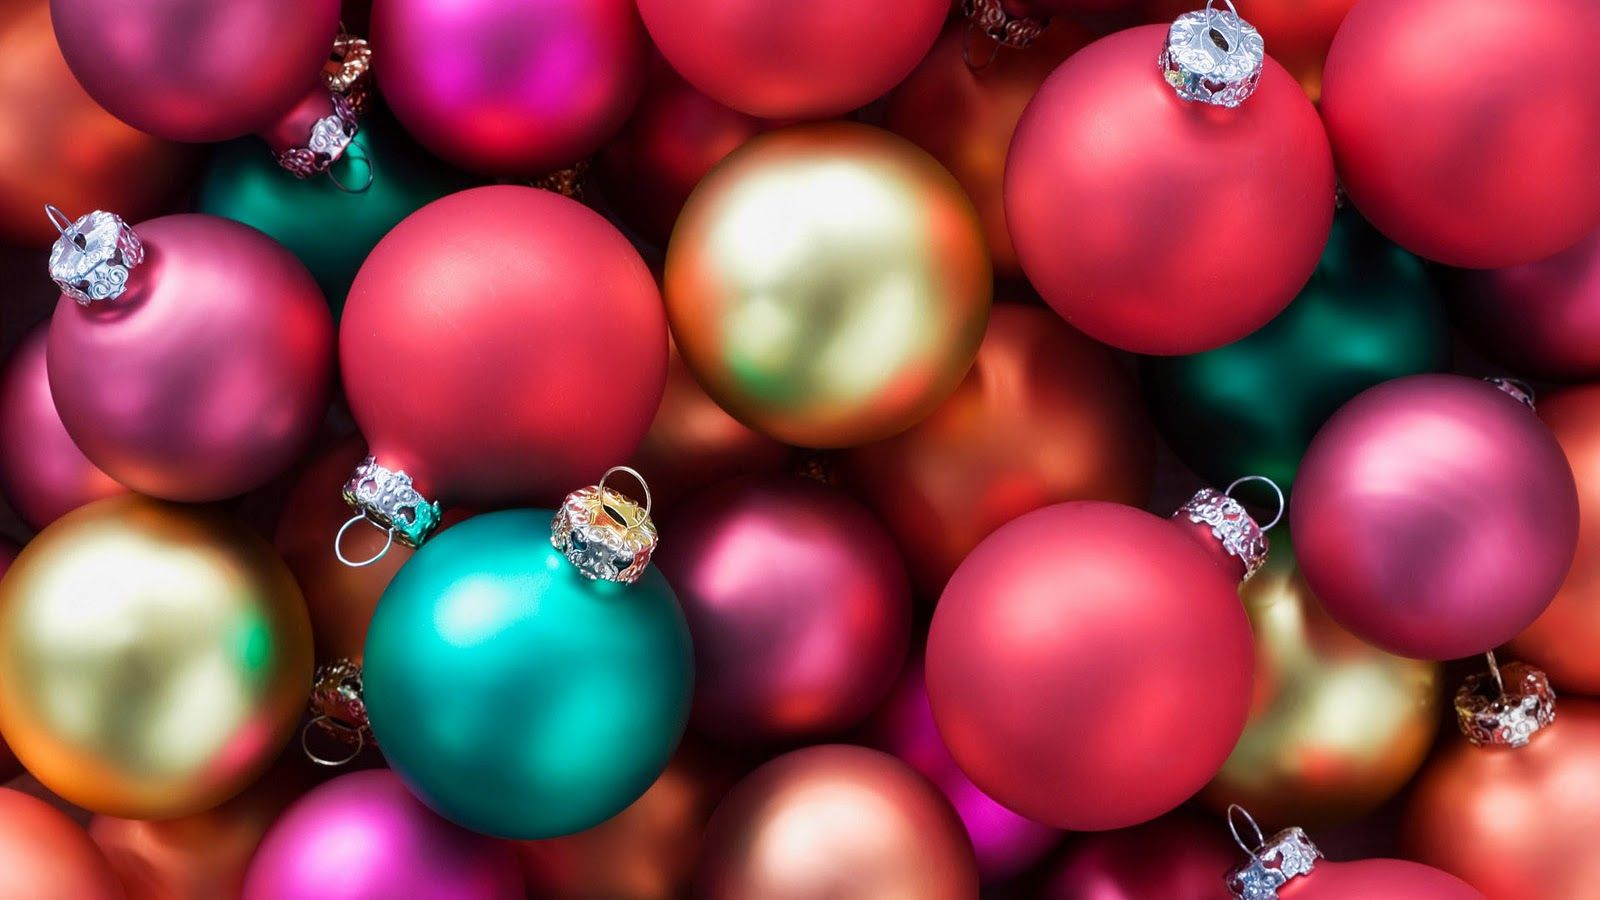 Christmas Powerpoint Backgrounds - Bing Images | Christmas ...